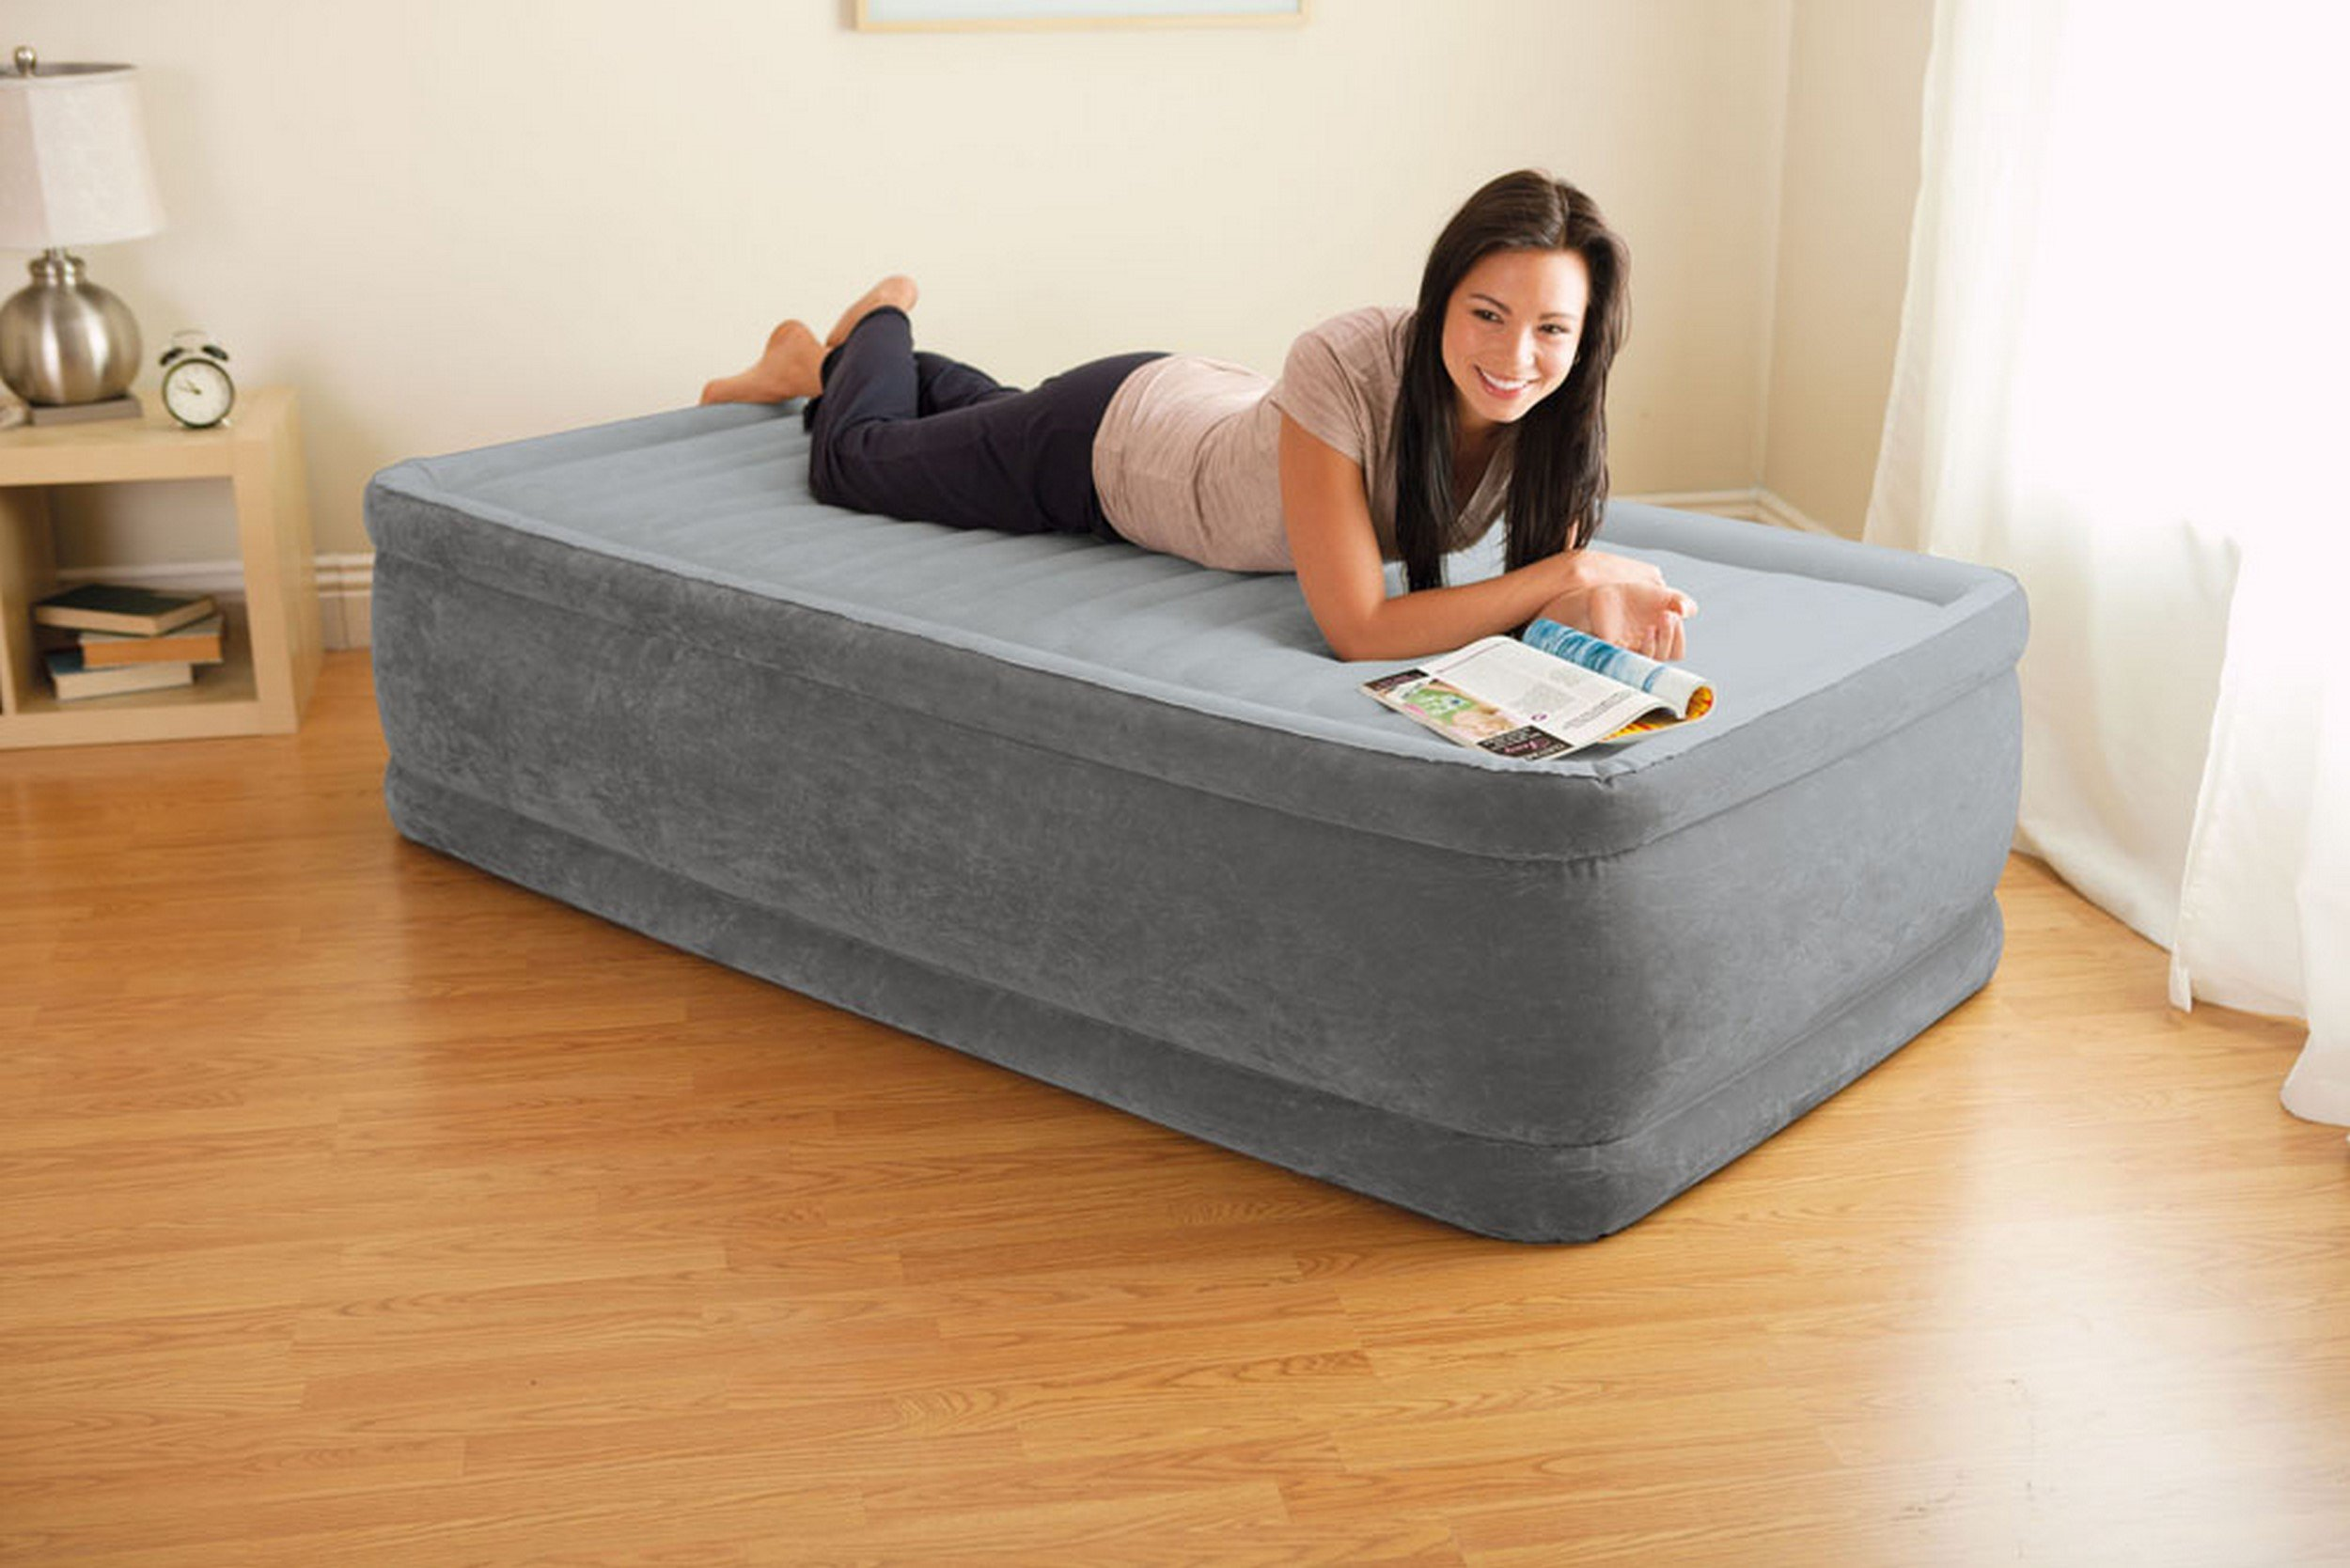 Intex Comfort Plush Elevated Dura-Beam Airbed with Built-in Electric Pump, Bed Height 18'', Twin by Intex (Image #24)